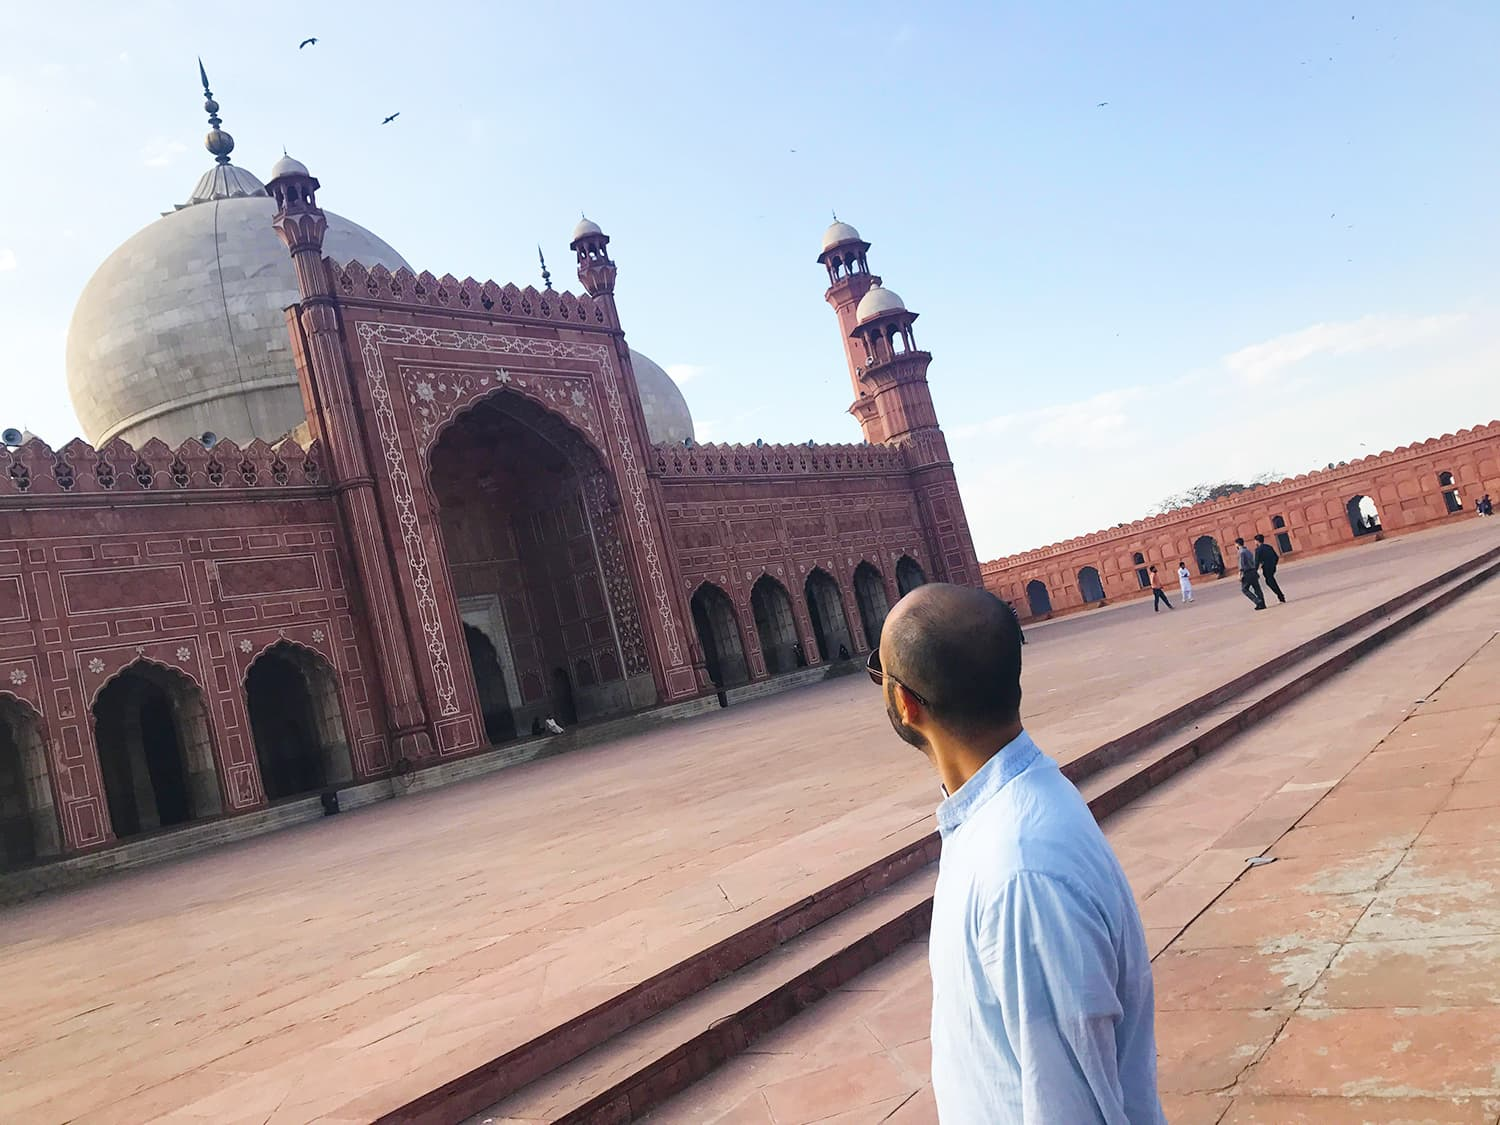 I couldn't take my eyes off the beautiful Mughal architecture of the Badshahi Masjid.